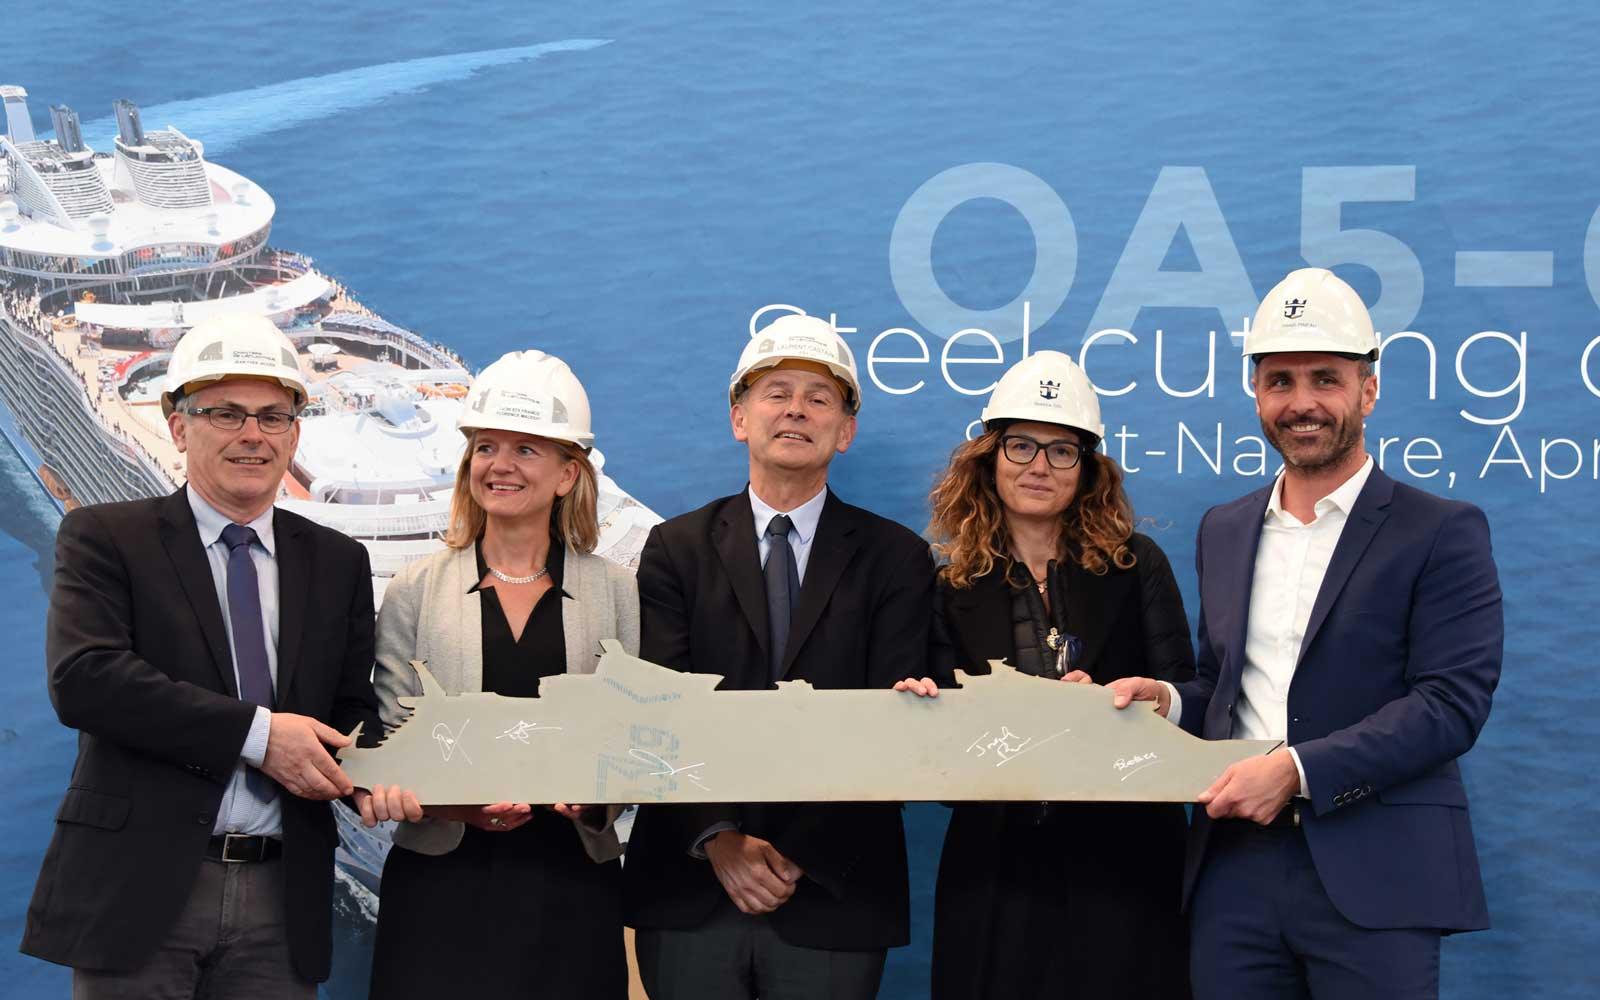 Royal Caribbean International celebrated the steel cutting of a fifth Oasis Class ship